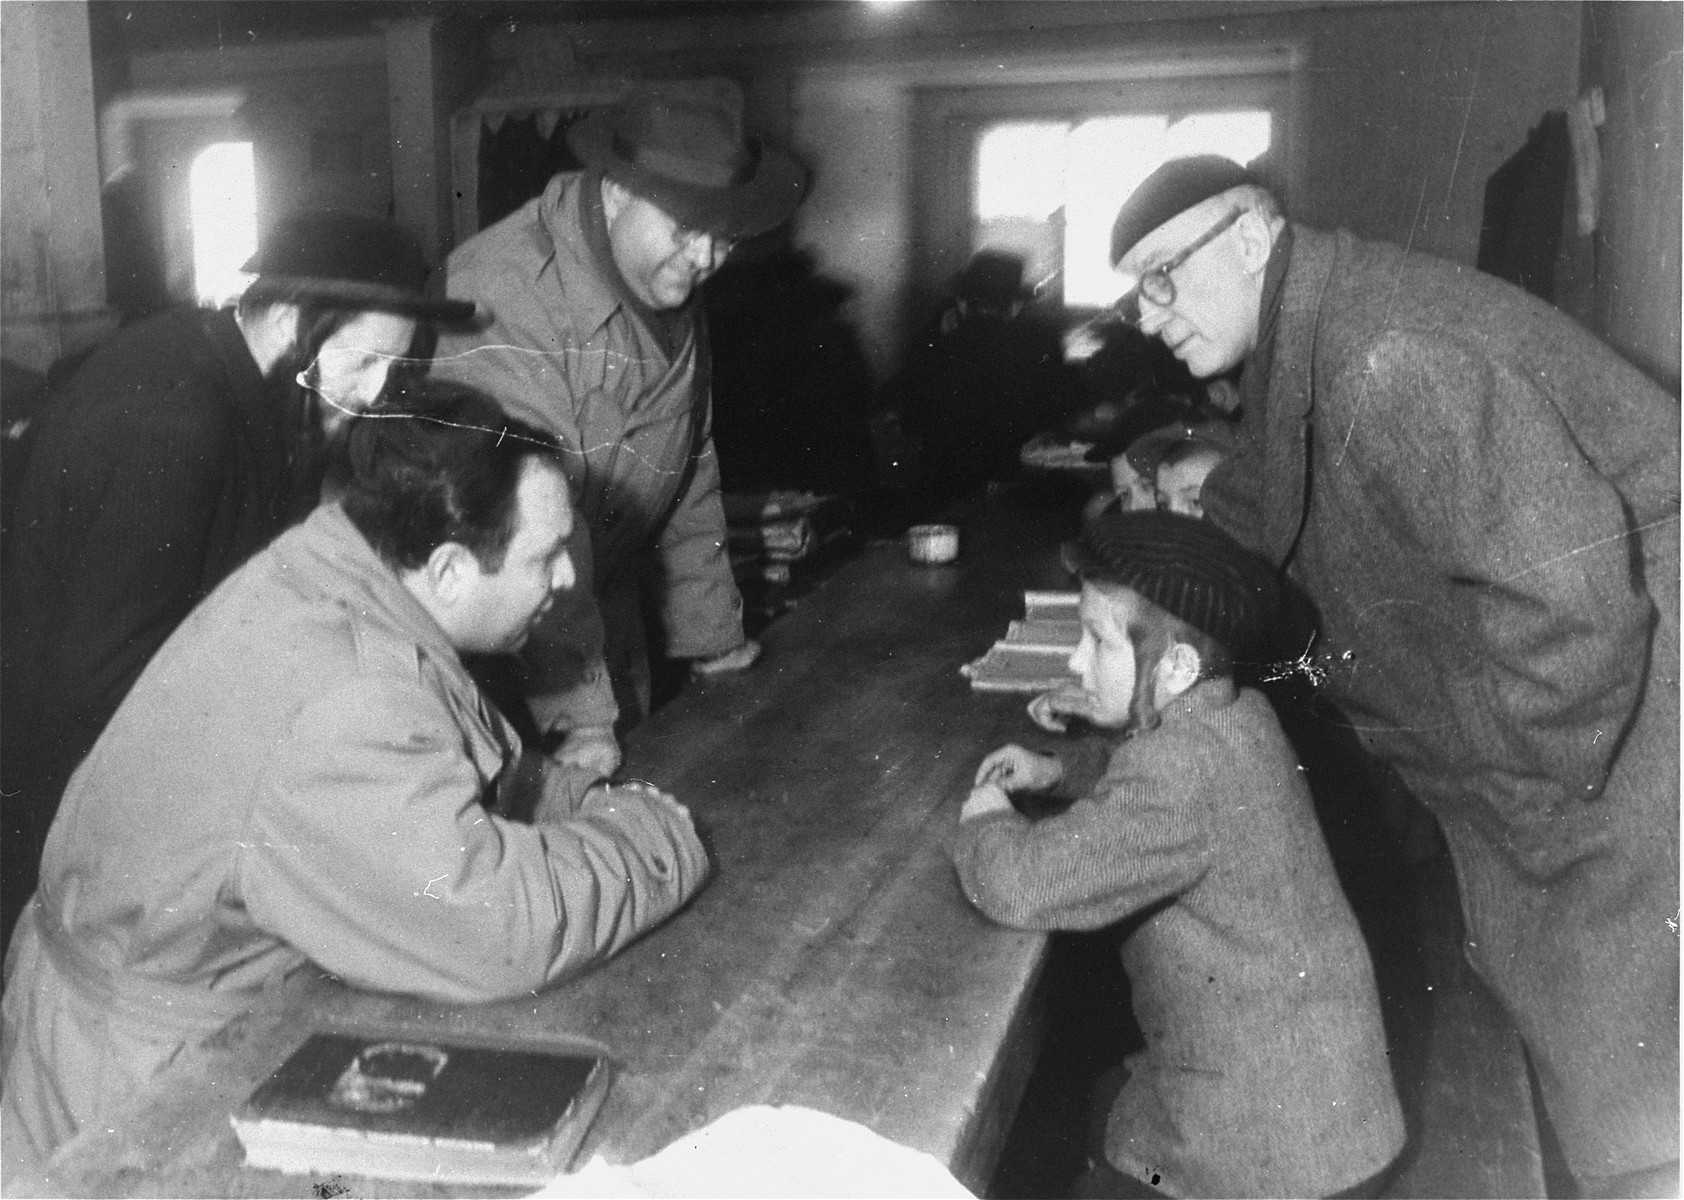 Saul Sorrin (left, foreground), director of UNRRA in the Munich area, visits a heder (religious primary school) at the Foehrenwald DP camp camp in the company of Frank  Kingdon (right), American journalist and politician, and Ted Feder (left), assistant director of the JDC in Germany.